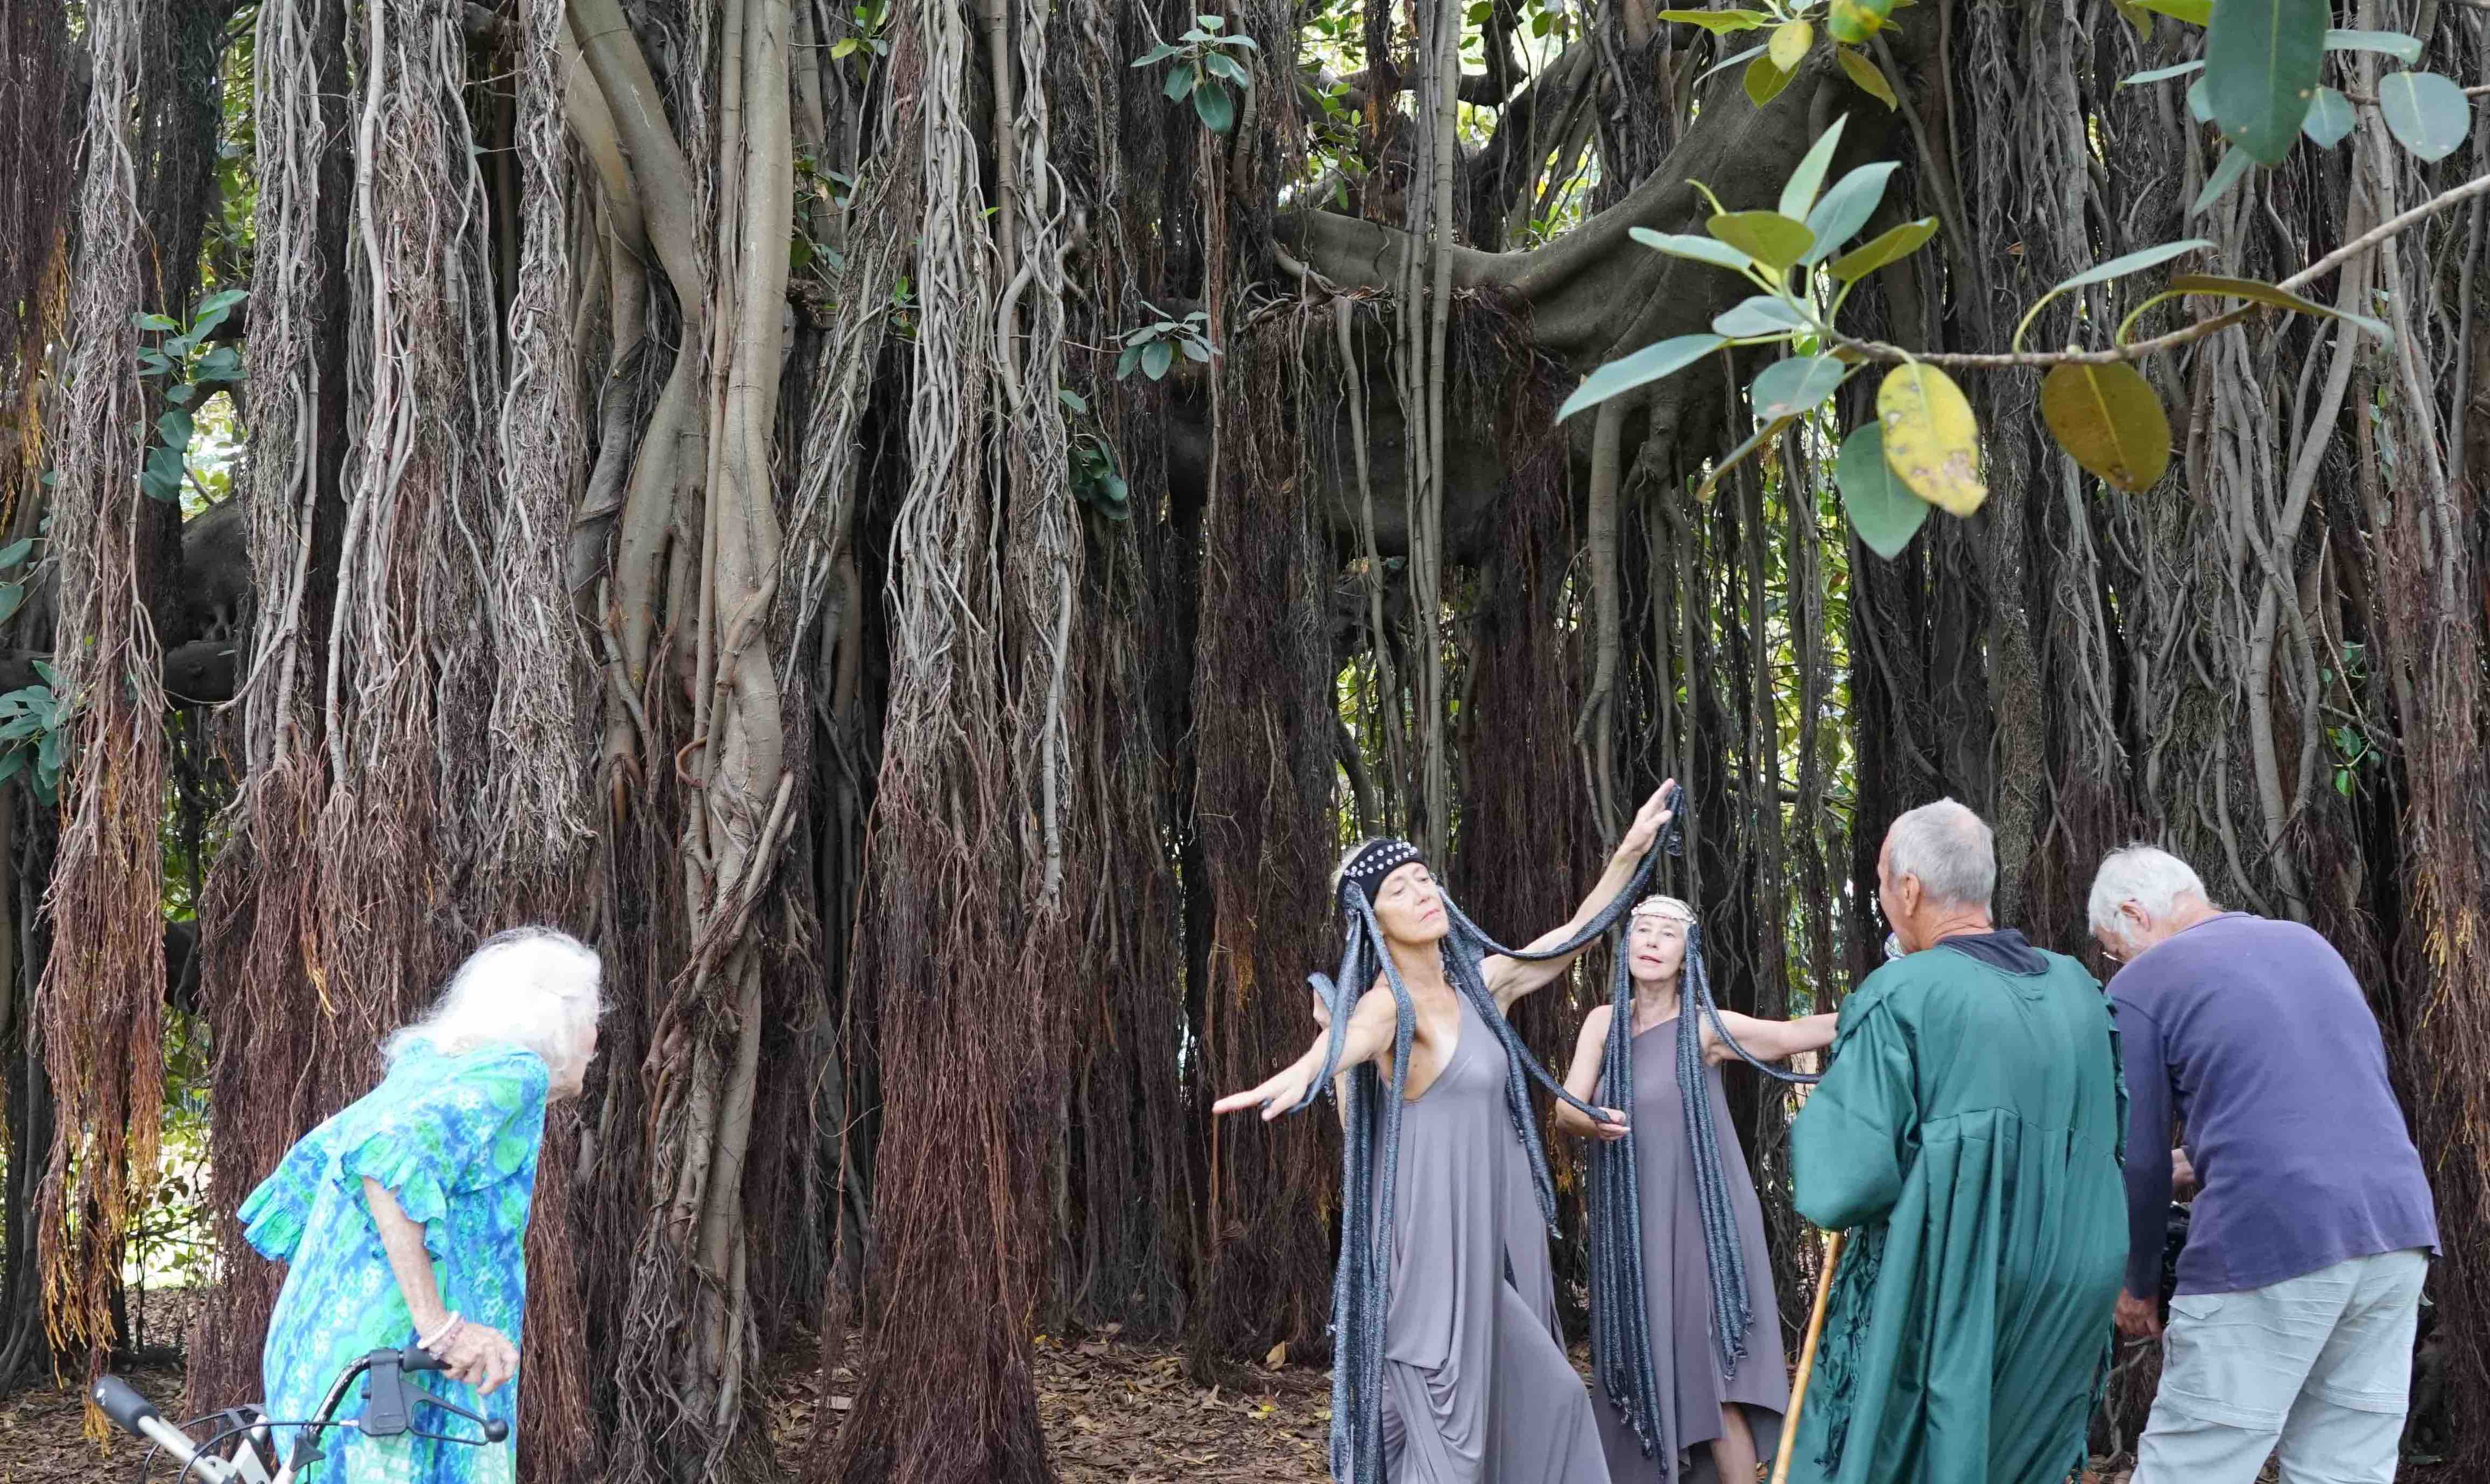 Eileen watches dancers Shane Carroll and Julia Cotton wearing headdresses inspired by the tree's aerial roots, with Patrick Harding-Irmer and cinematographer Richard.